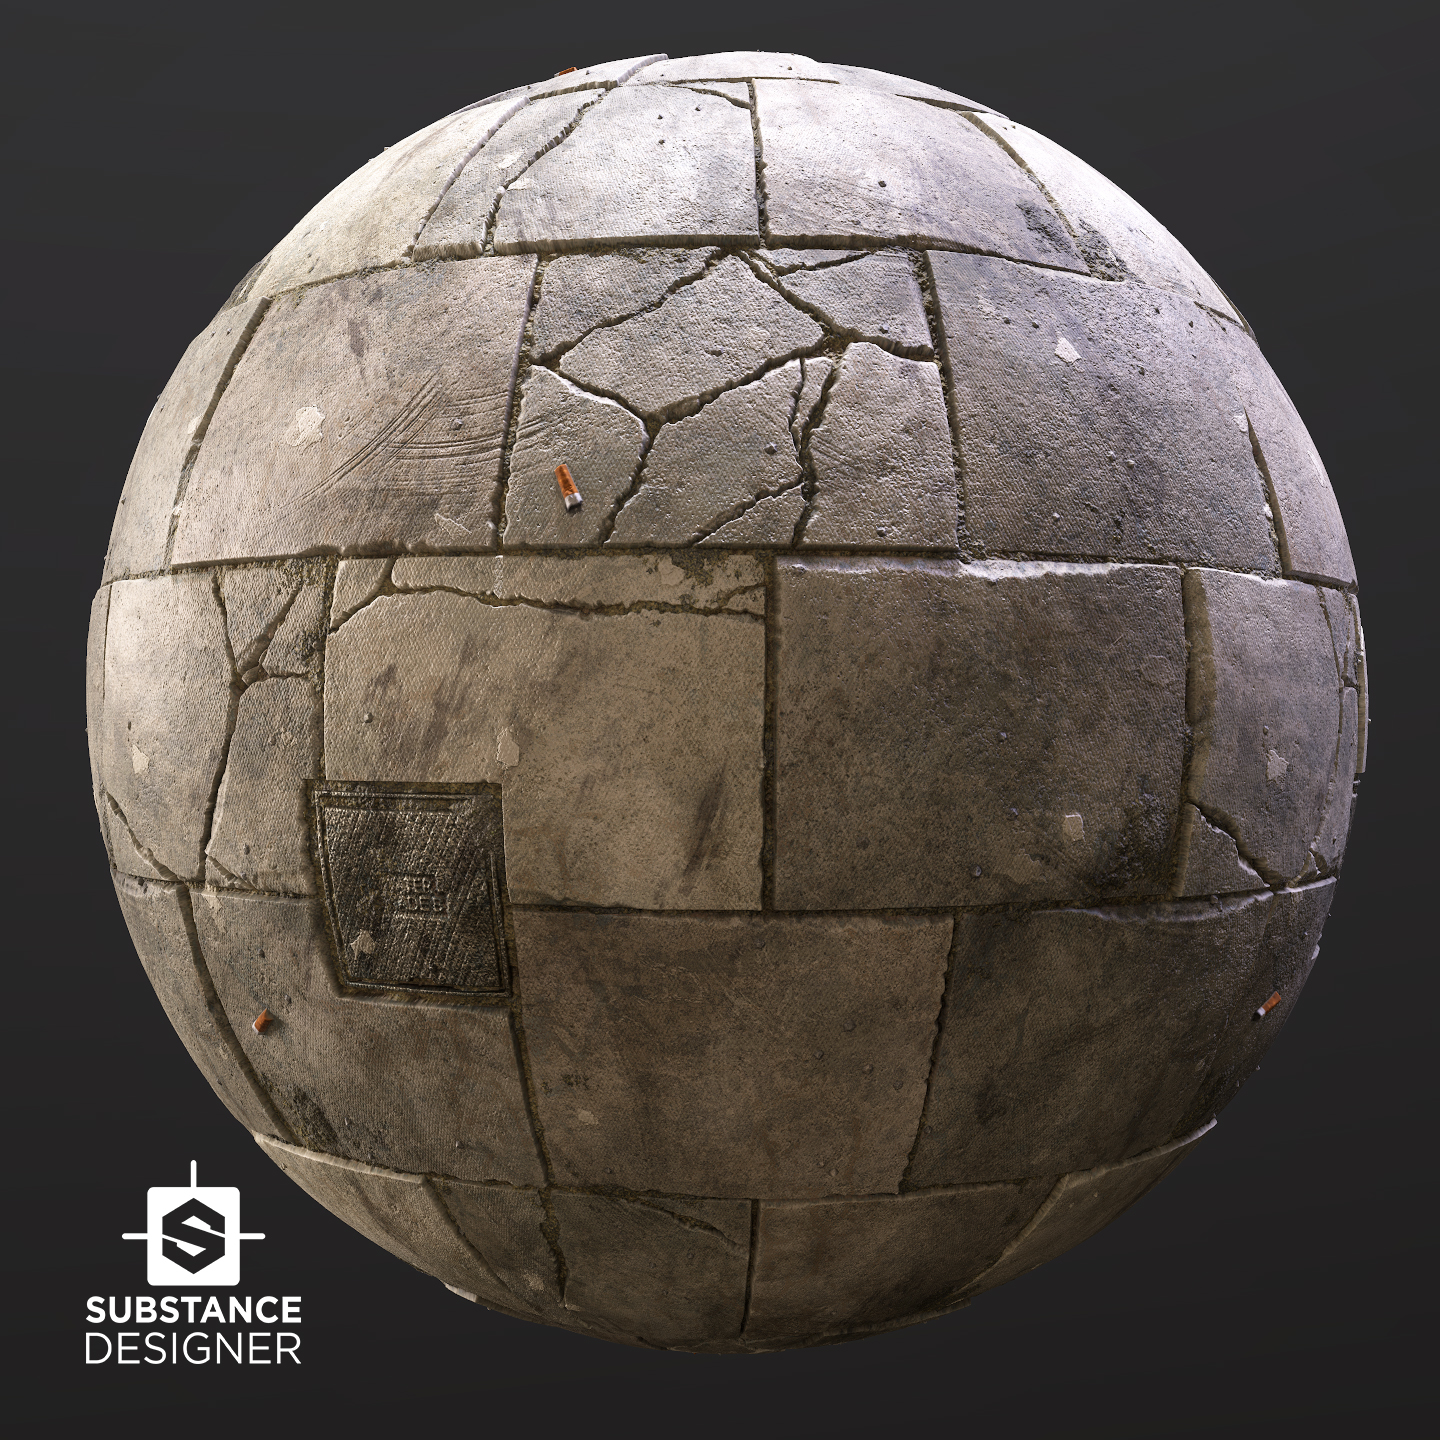 Paving Slabs - 100% Substance Designer | The Rookies